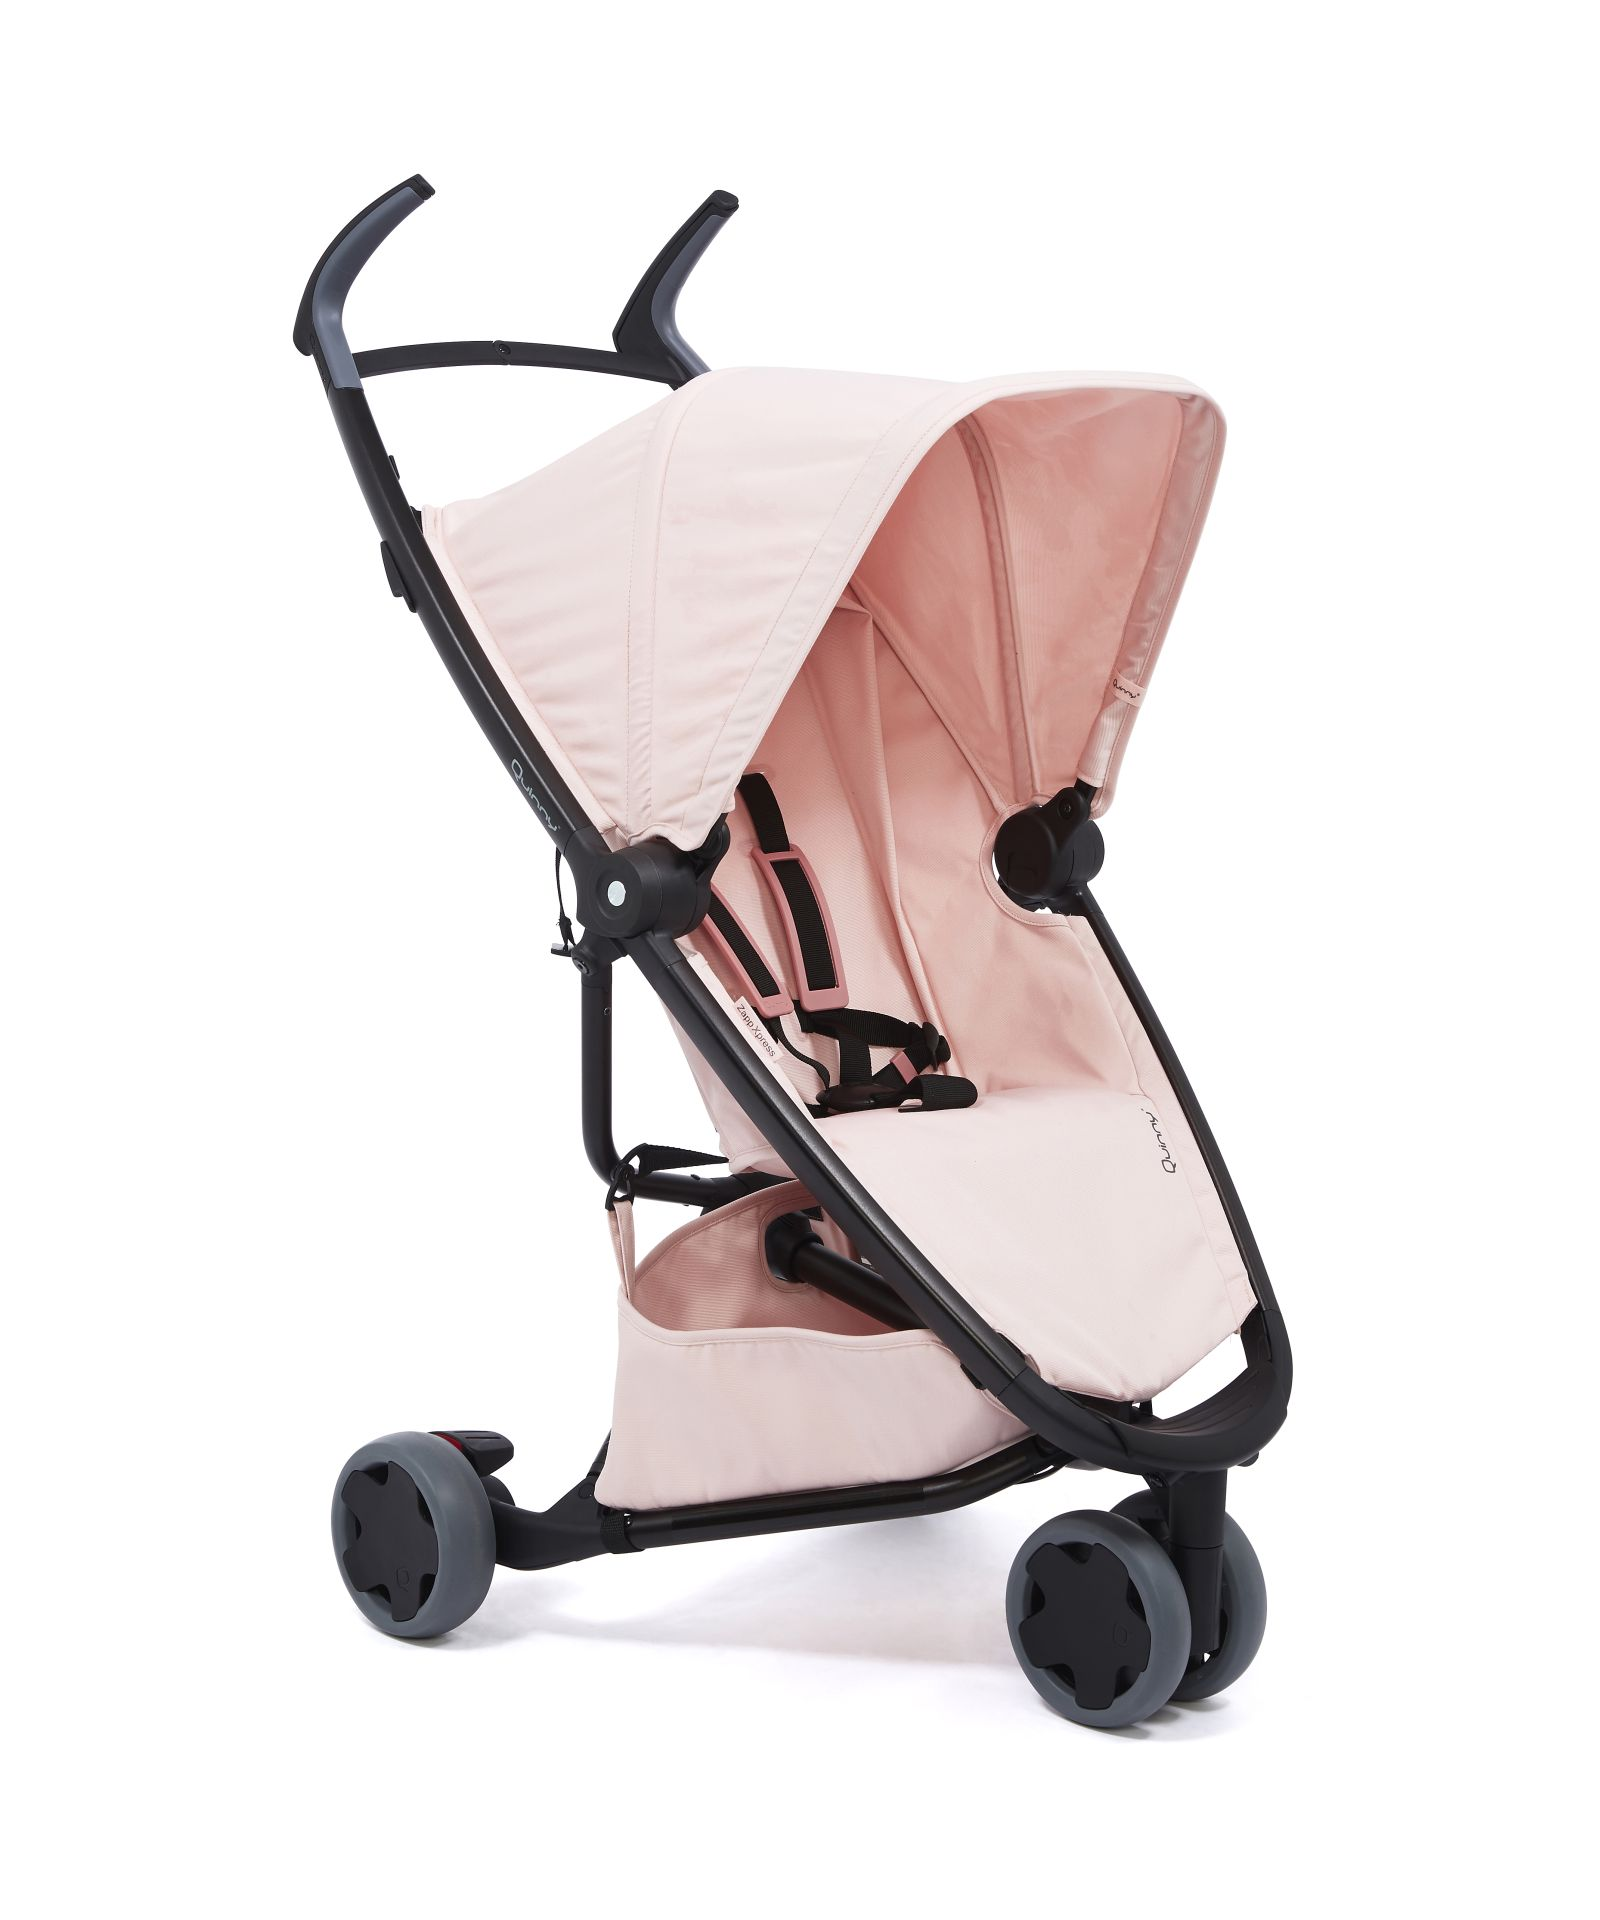 quinny buggy zapp xpress 2018 all blush buy at kidsroom strollers. Black Bedroom Furniture Sets. Home Design Ideas